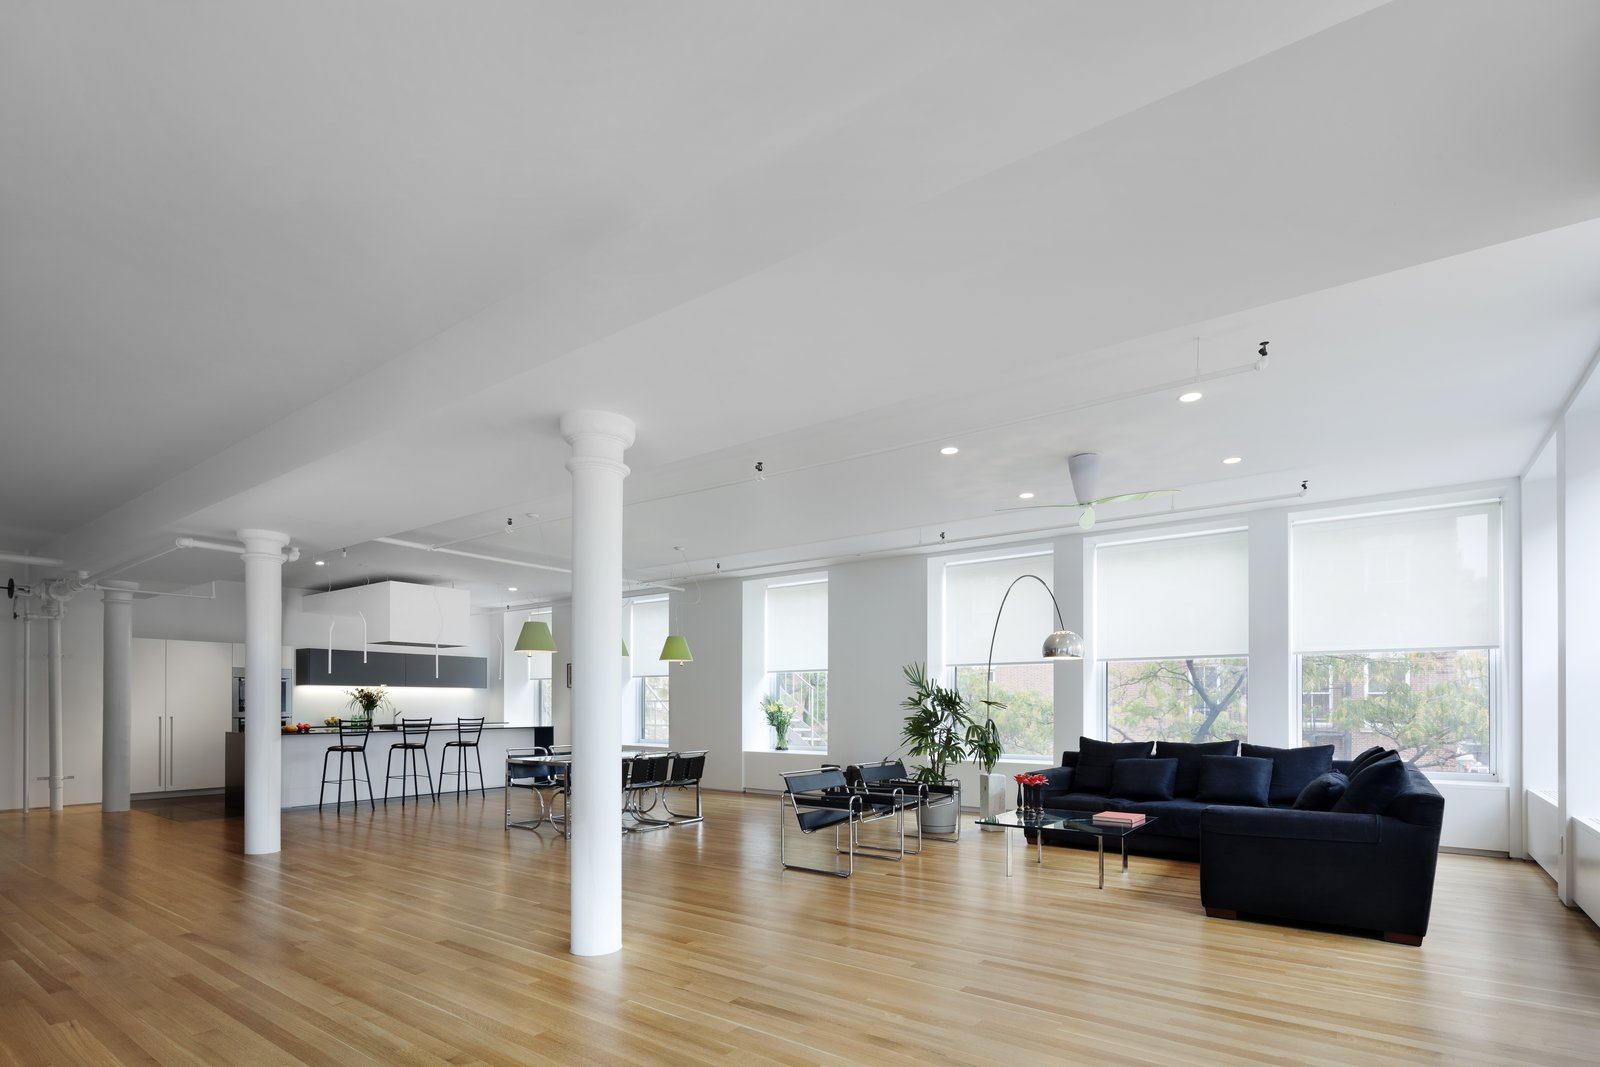 Living Room, Light Hardwood Floor, Recessed Lighting, Chair, Sofa, and Coffee Tables  Spring Street Loft by Verona Carpenter Architects